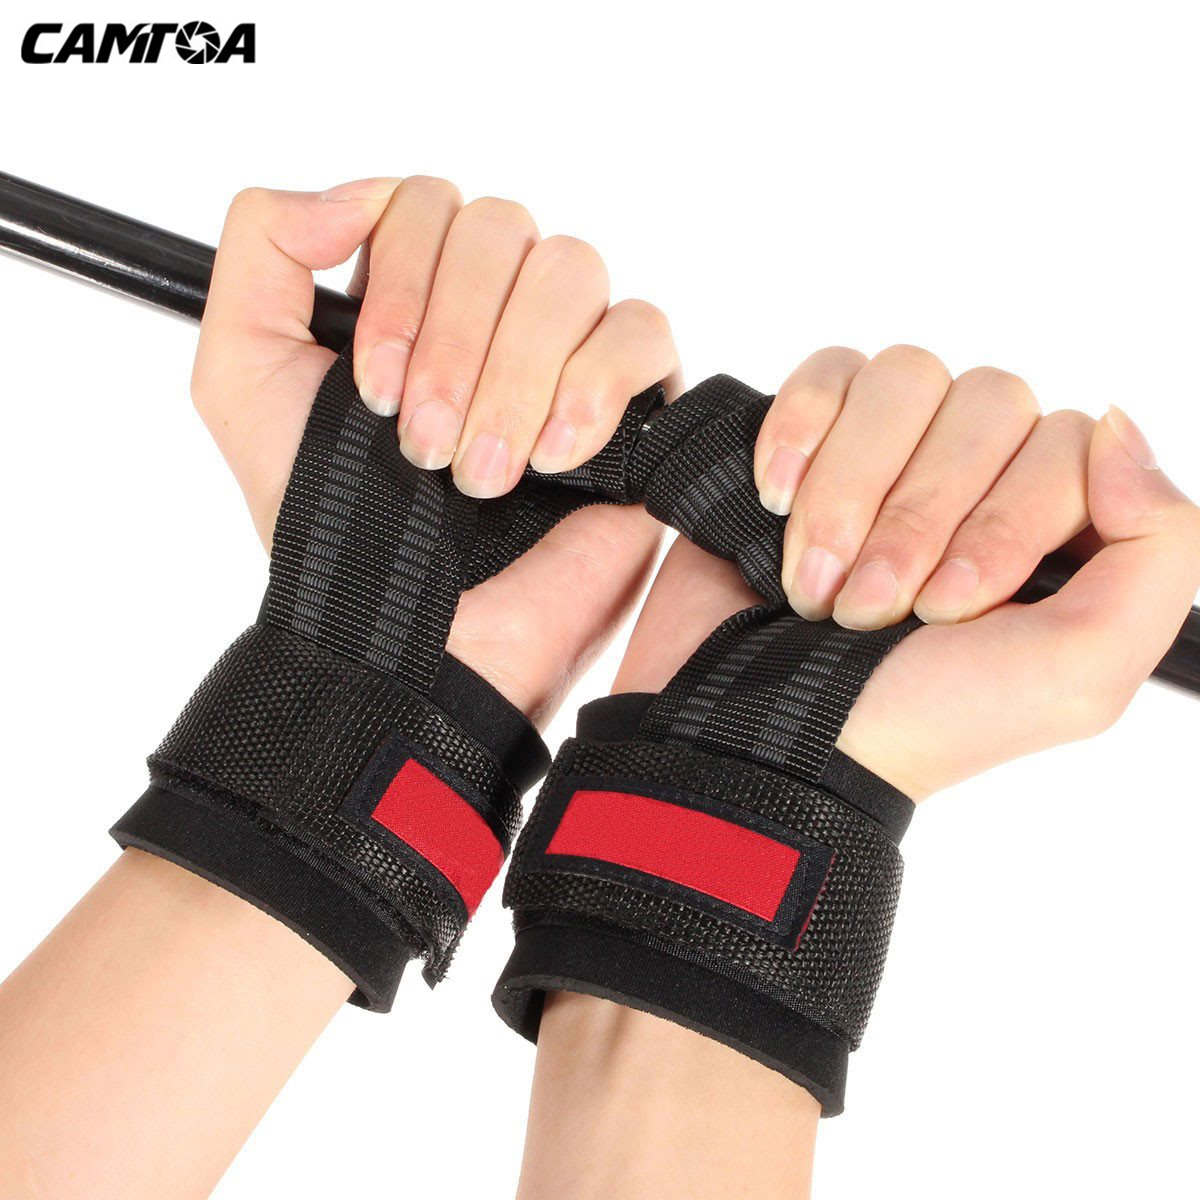 Gym Weight Lifting Training Wrap Gym Straps Hand Bar Wrist Support Yoga Exercise